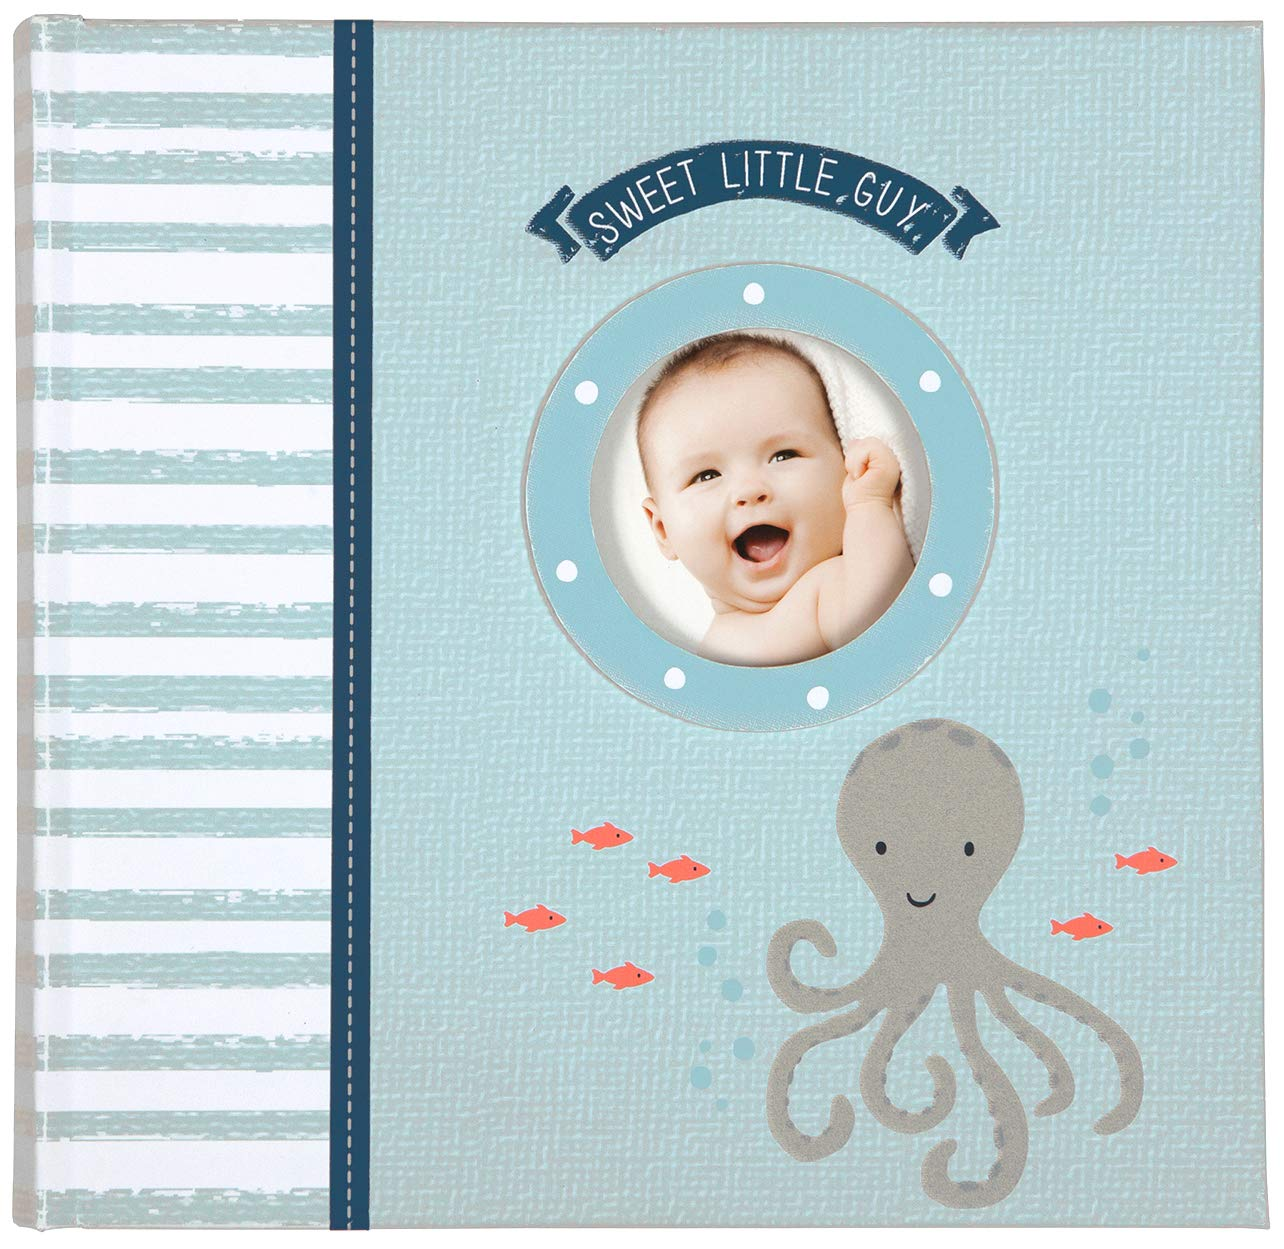 Carter's Blue Nautical My First Years Loose Leaf Memory Book for Baby Boys, 10'' W x 11.75'' H, 64 Pages